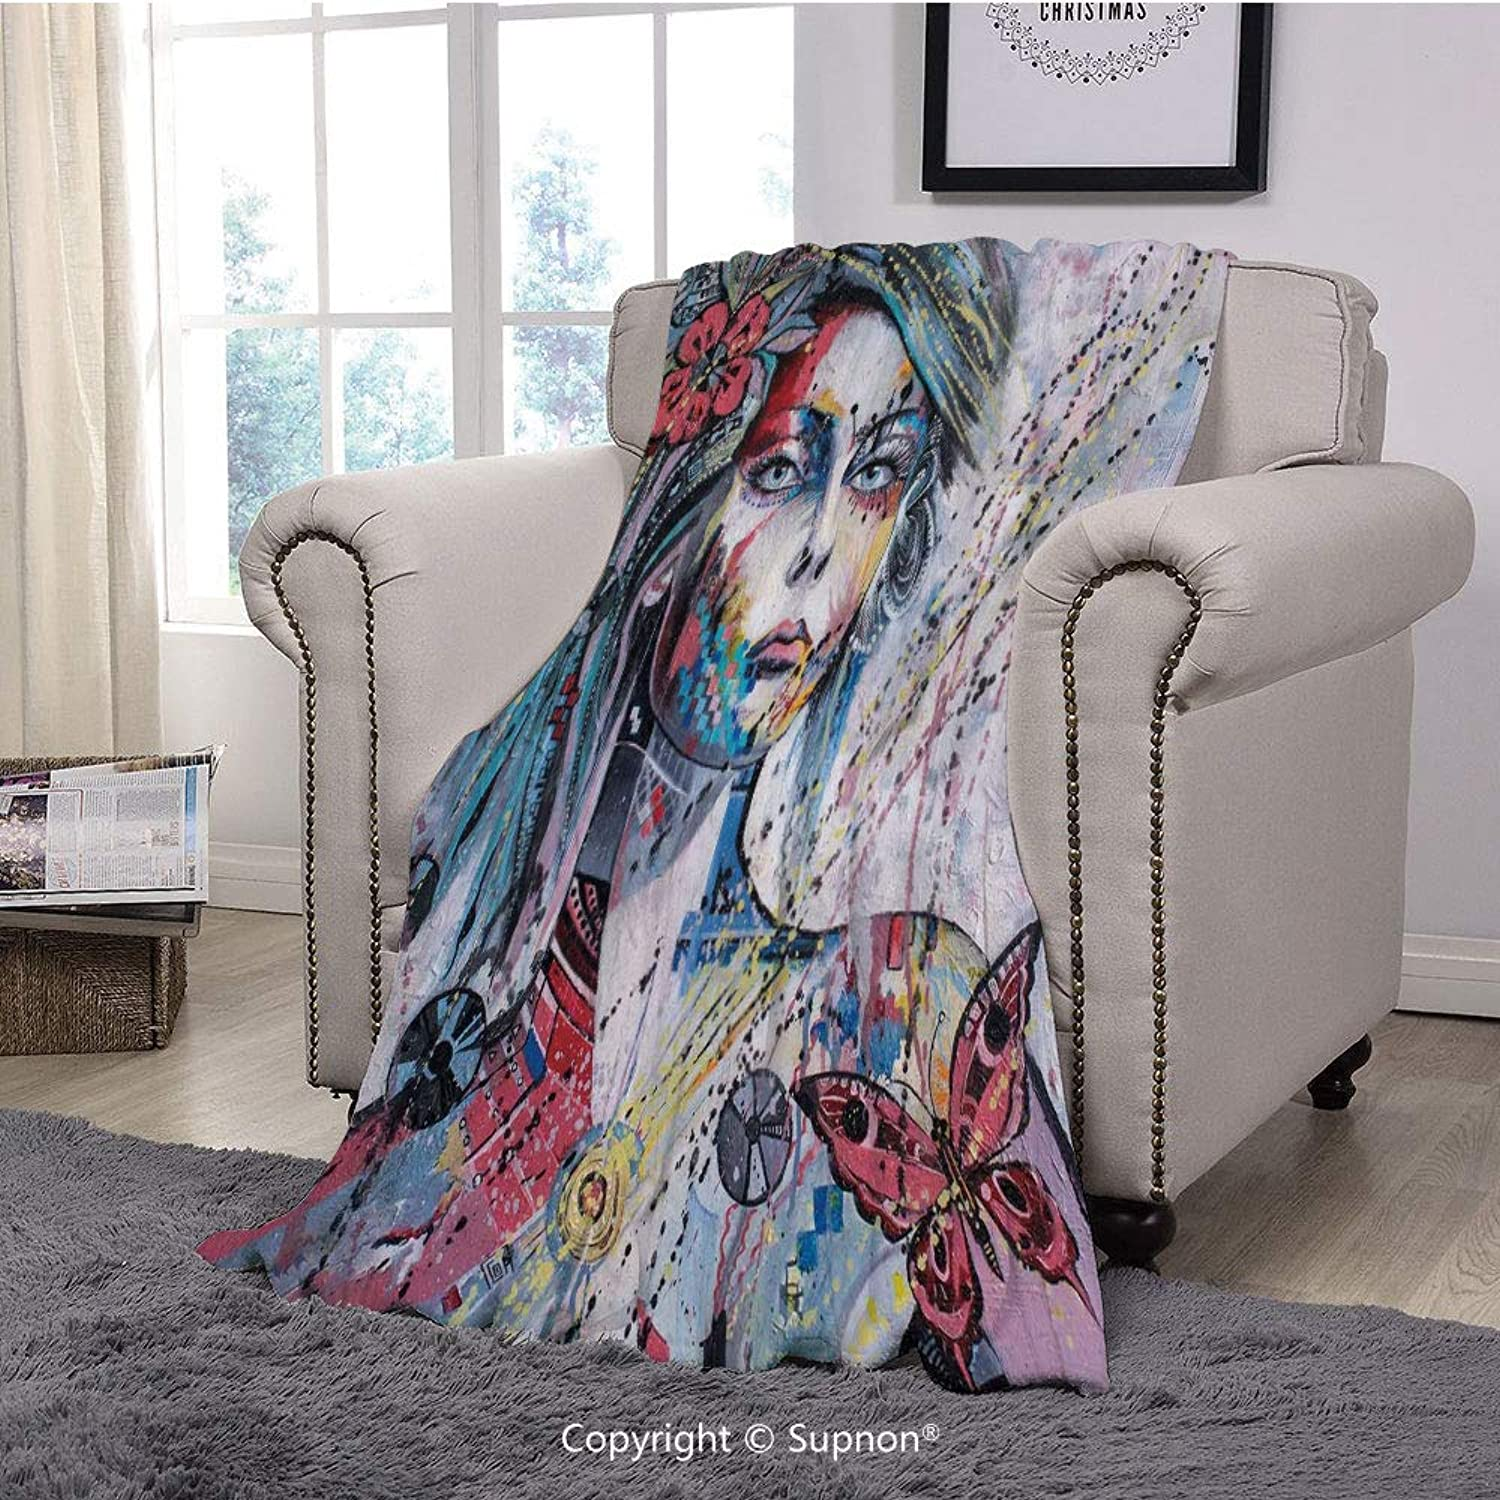 BeeMeng Printing Blanket Coral Plush Super Soft Decorative Throw Blanket,Art,Fantasy Portrait of a Girl with Floral and Geometric Details Butterflies color Splashes,Multicolor(59  x 59 )